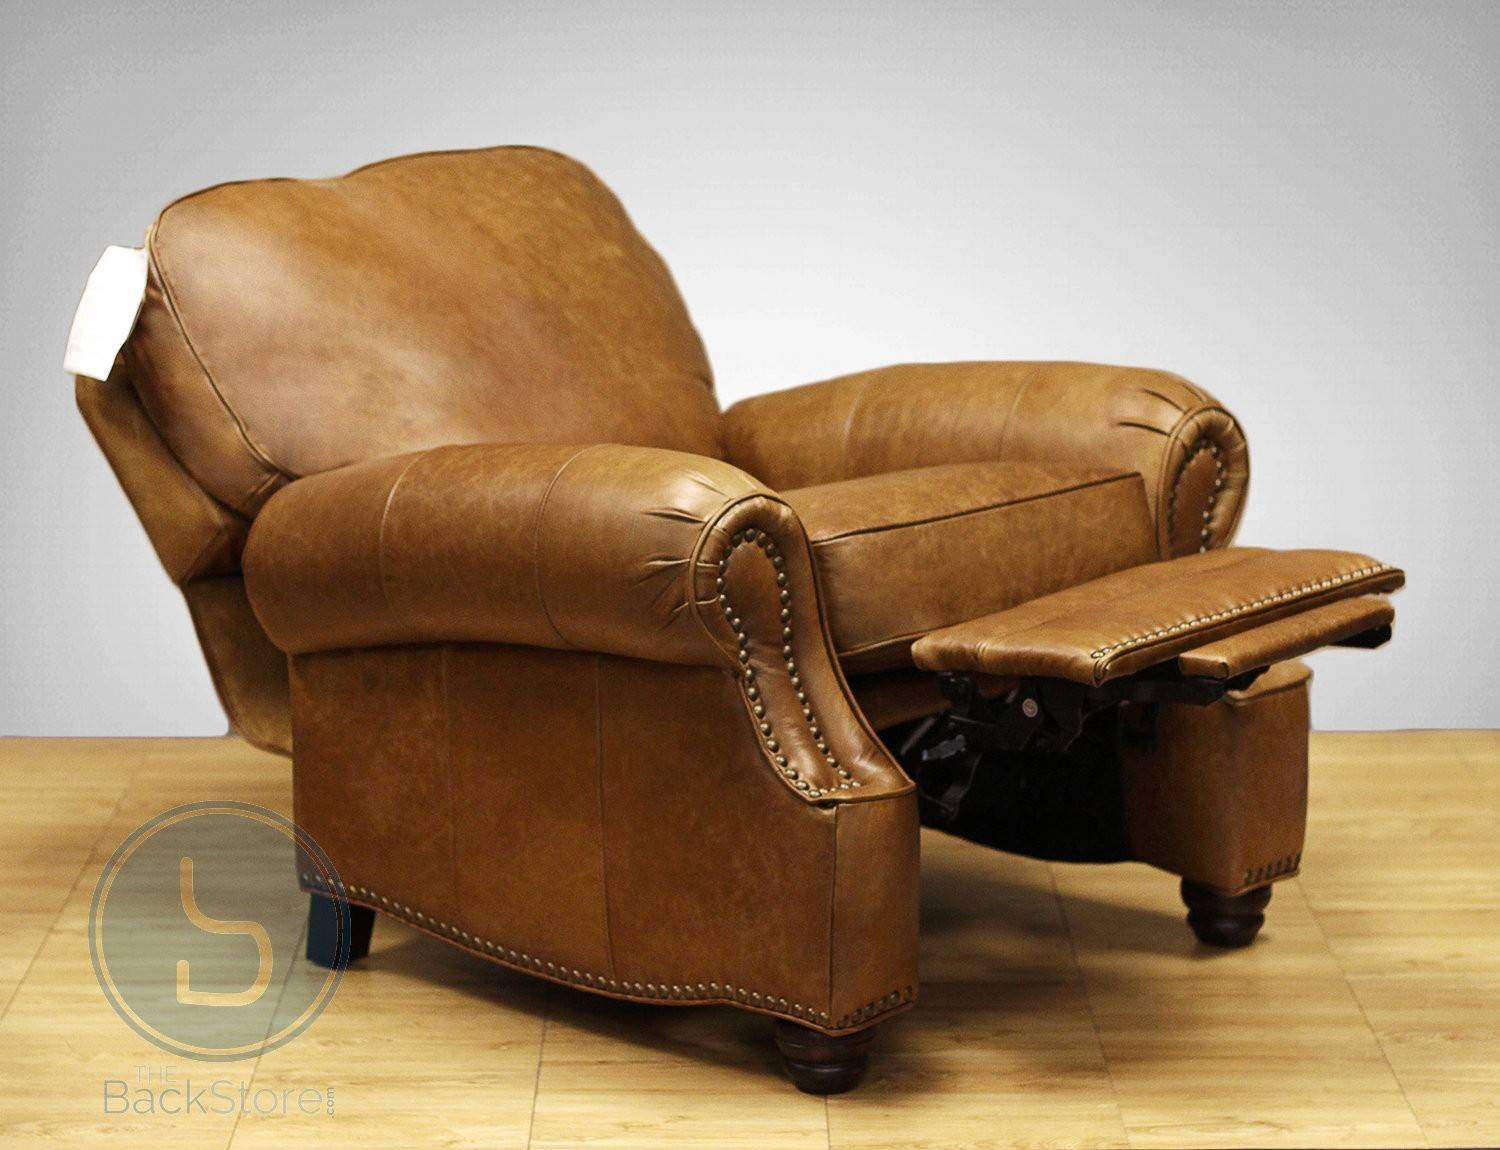 Barcalounger Longhorn Ii Leather Recliner Chair throughout Barcalounger Sofas (Image 8 of 15)